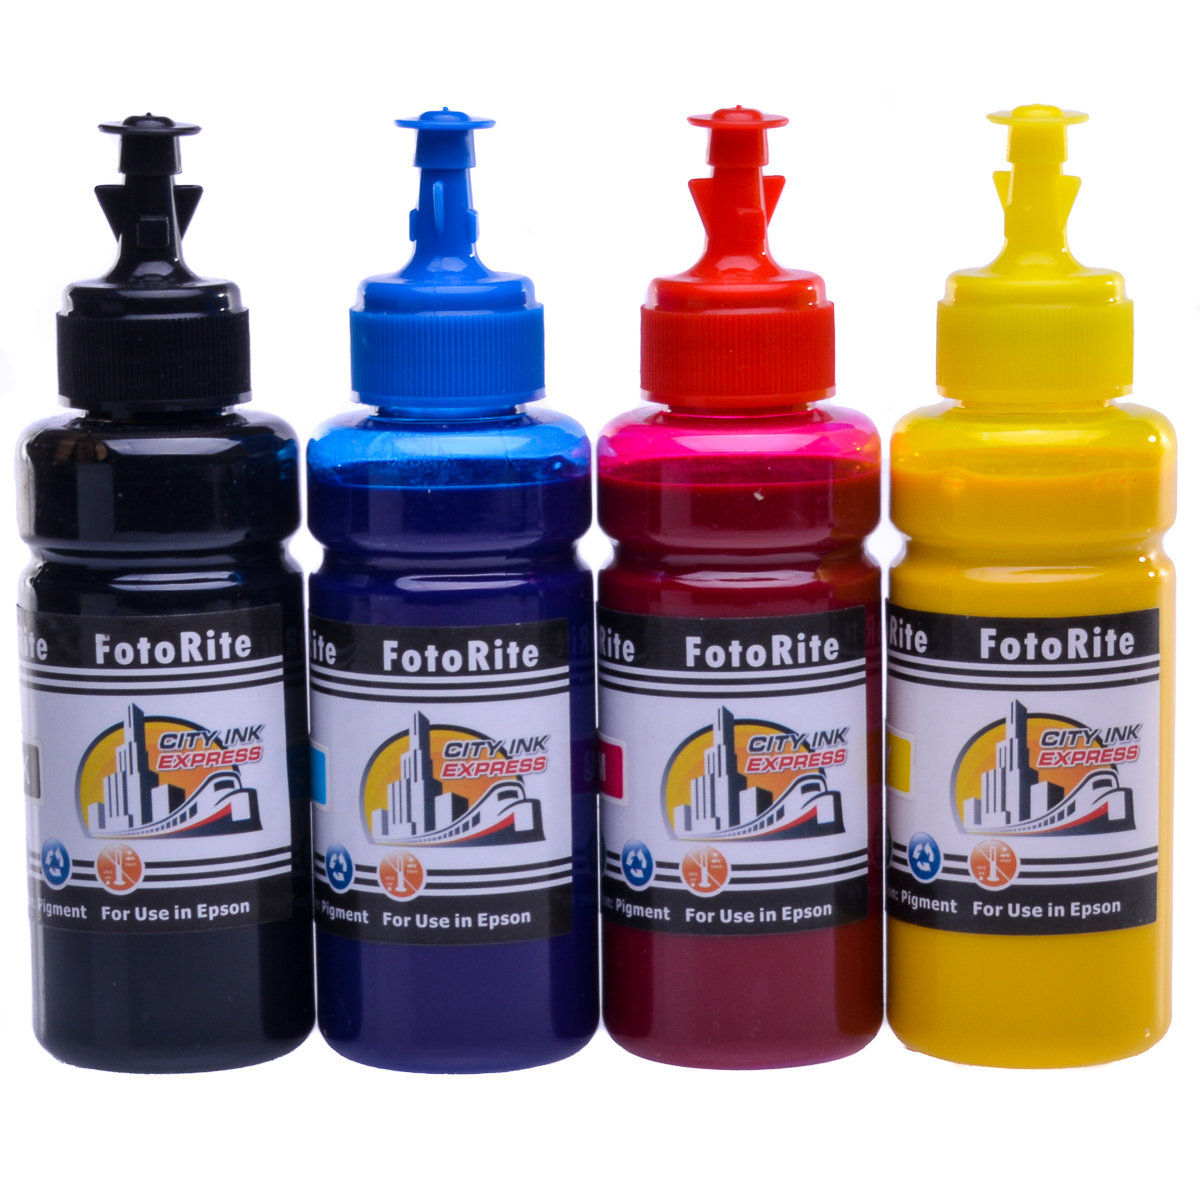 Cheap Multipack pigment ink refill replaces Epson Stylus SX445W